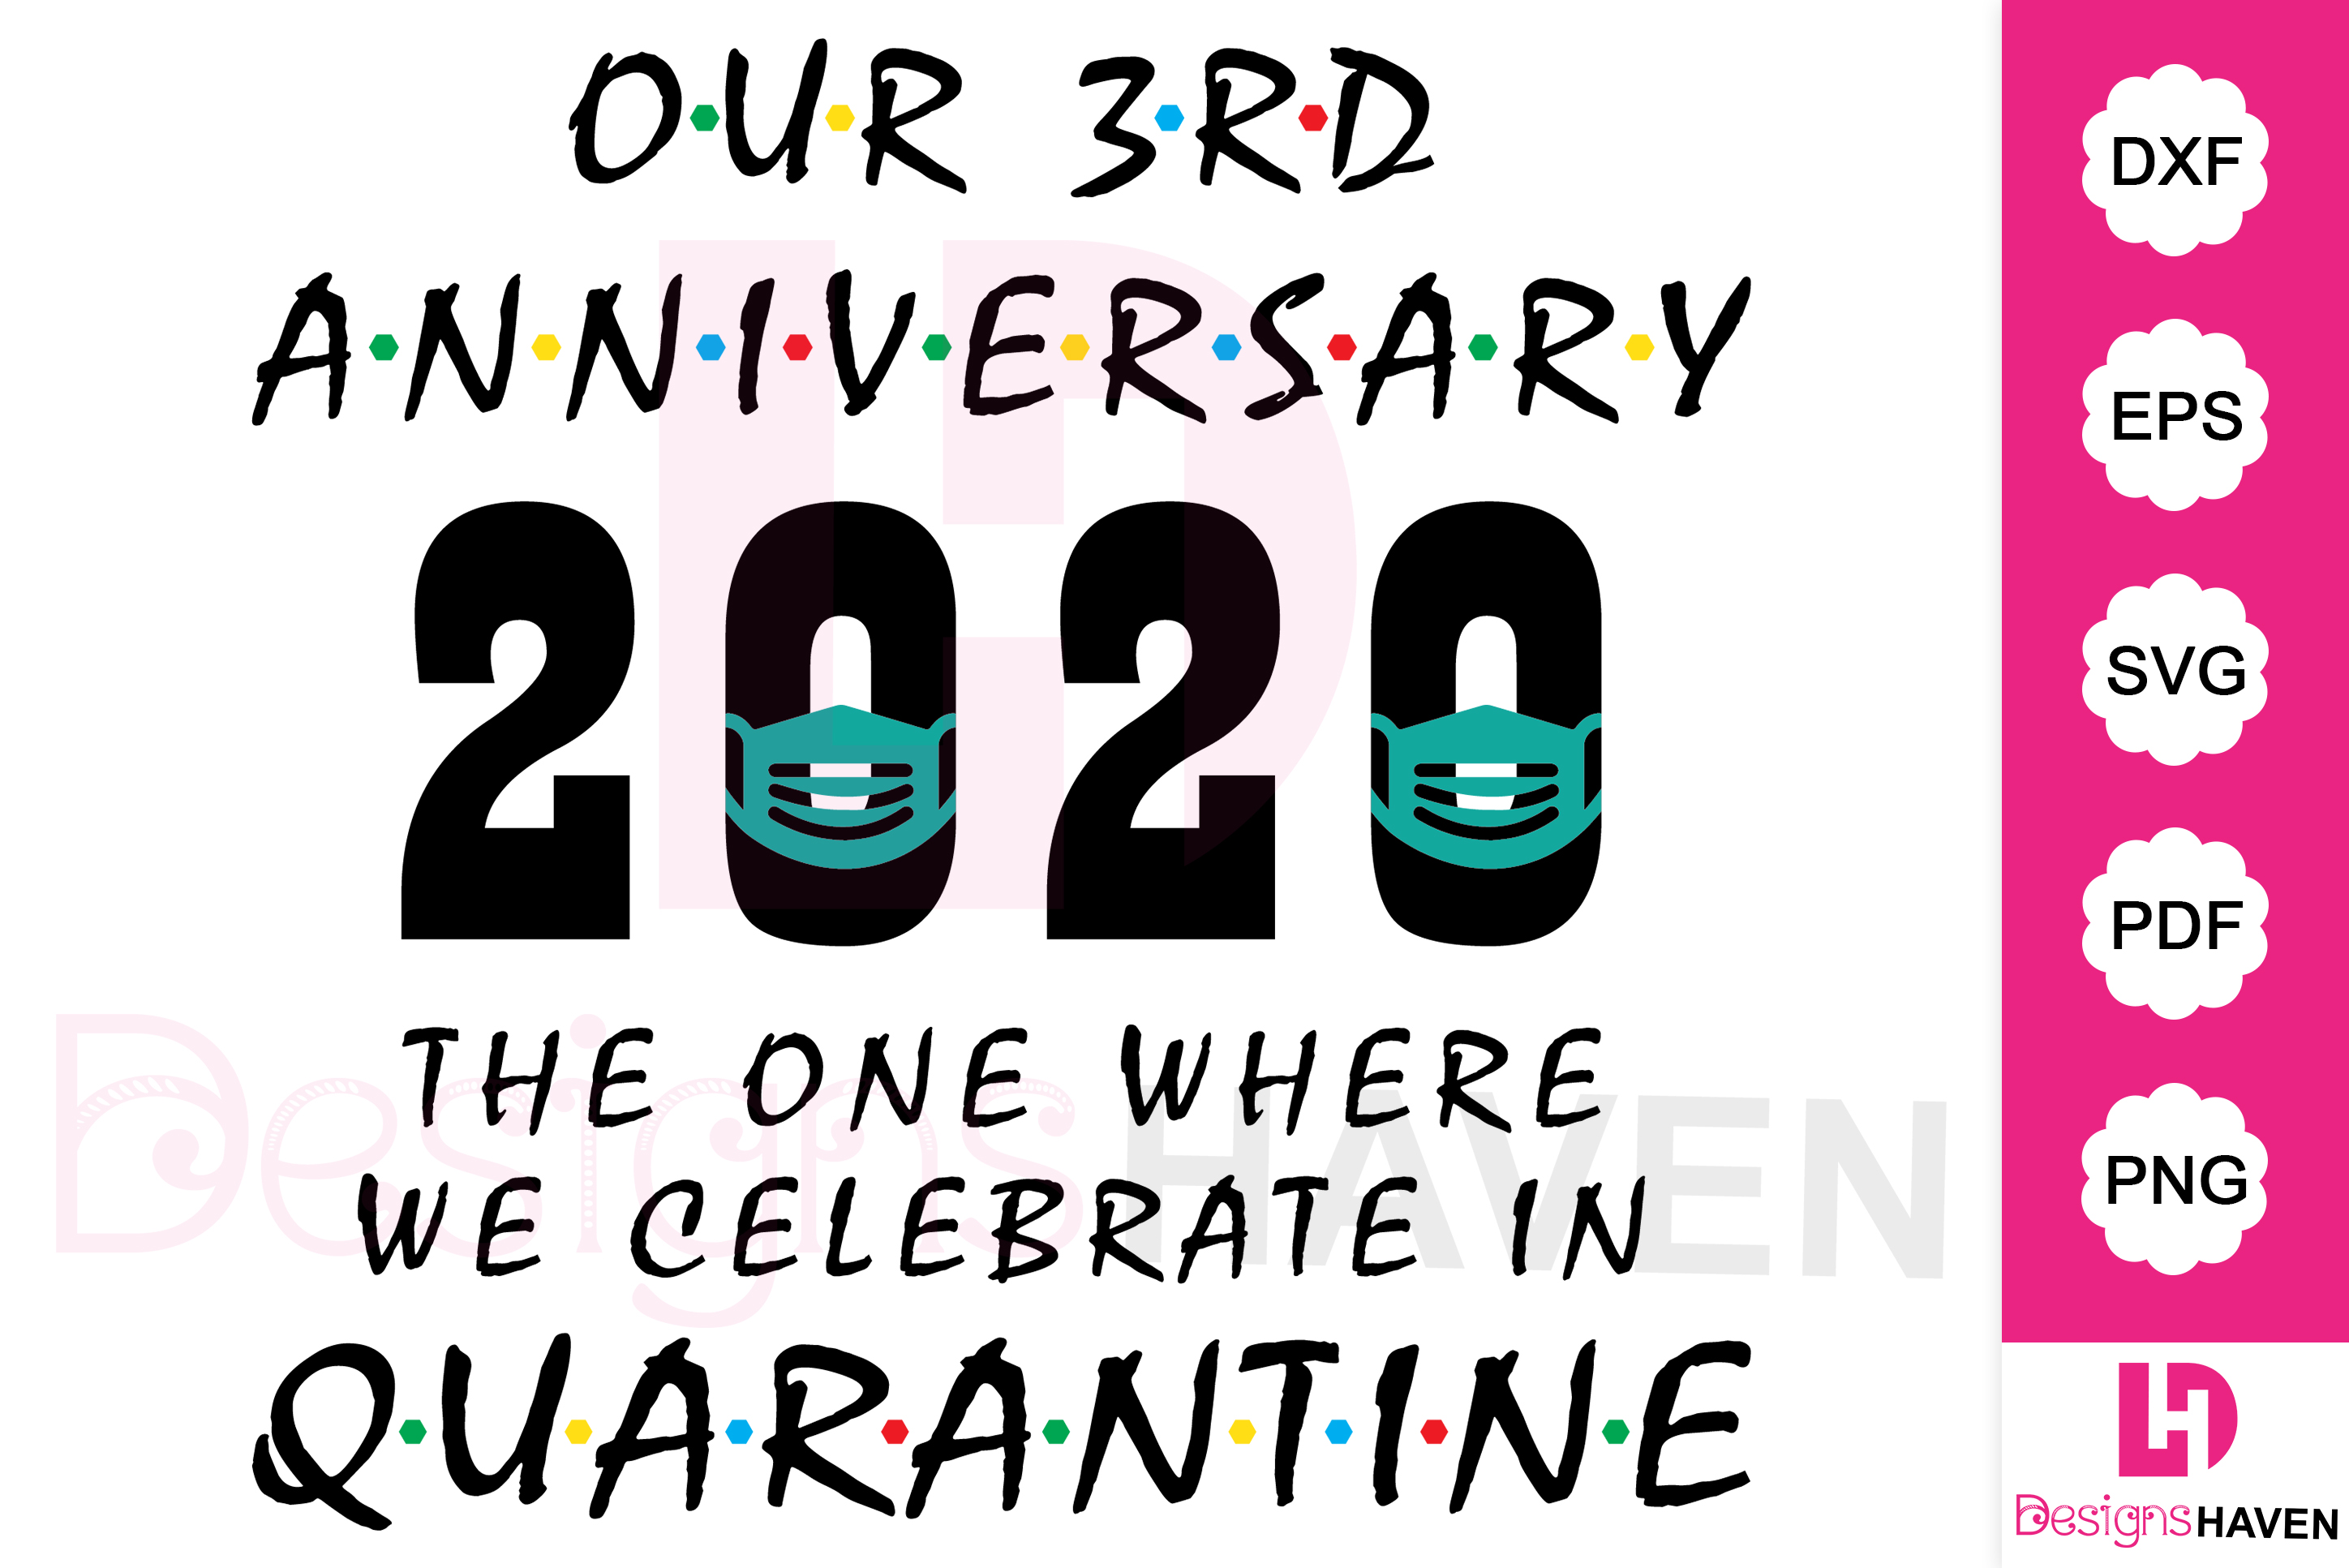 Download Free Our 3rd Anniversary 2020 Quarantine Graphic By Designshavenllc for Cricut Explore, Silhouette and other cutting machines.